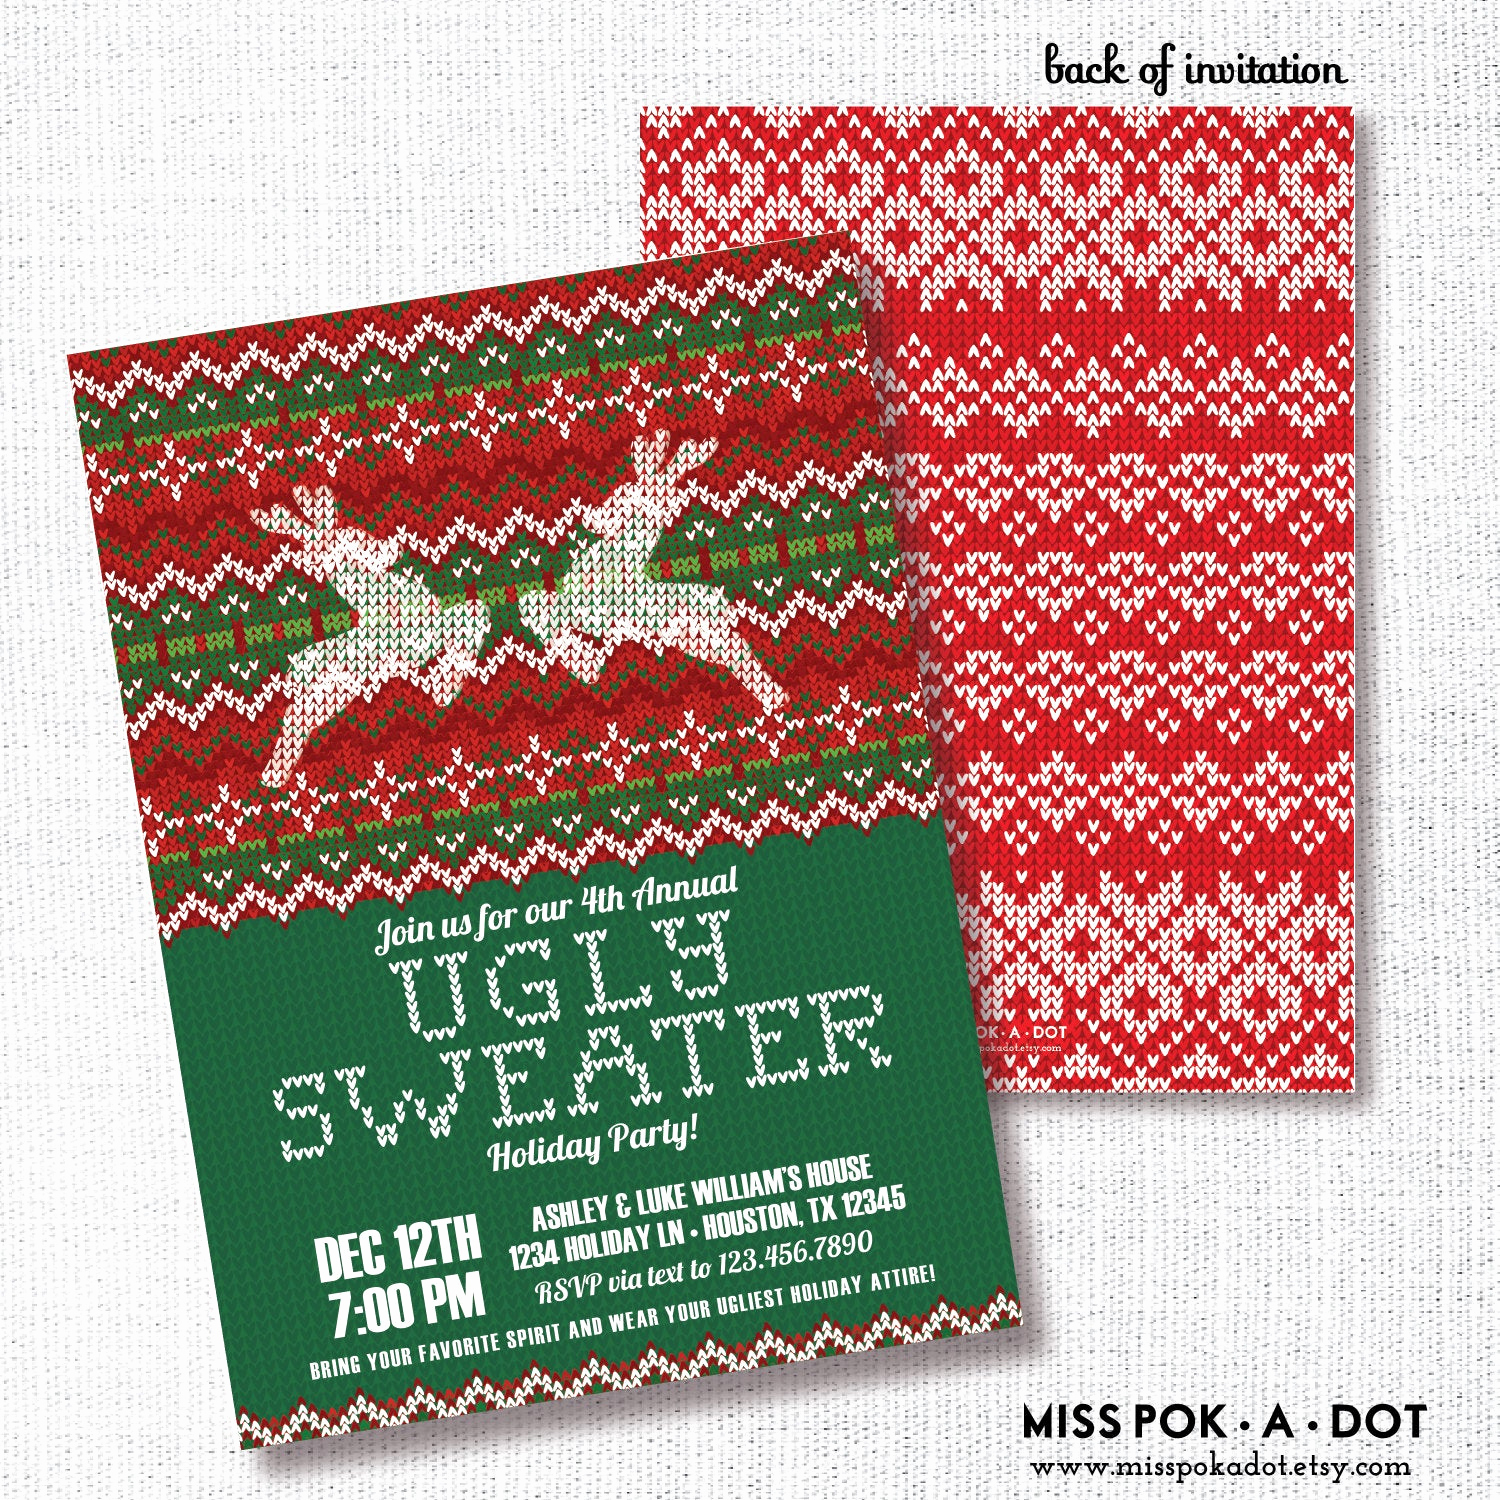 Ugly Sweater Christmas Party Invitation Inspirational Ugly Sweater Holiday Party Invitation Printable Tacky